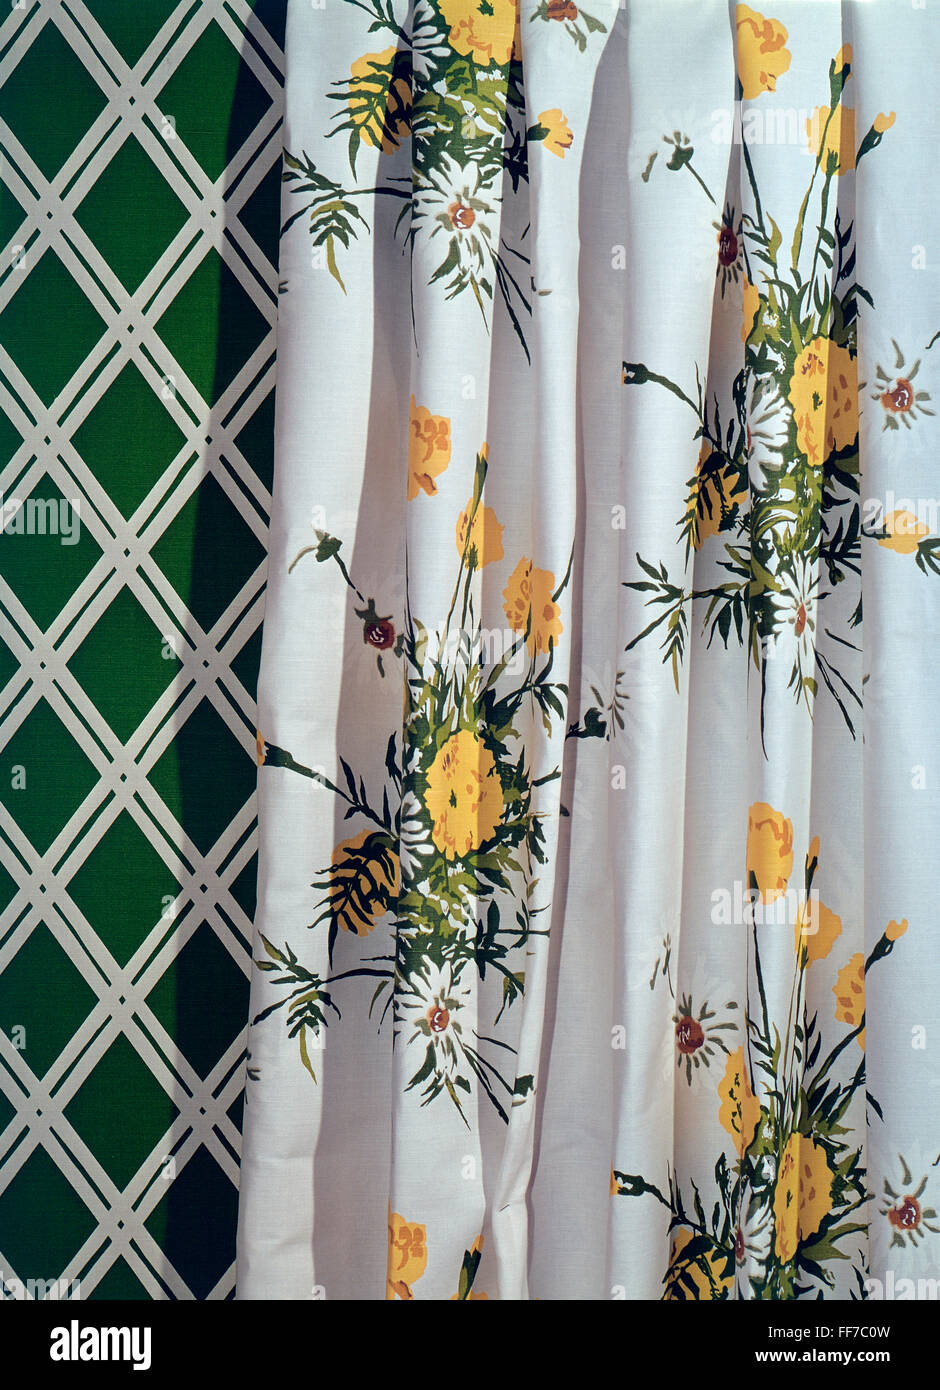 furnishings, curtain with floral pattern in front of wallpaper with rhomb pattern, 1970s, Additional-Rights-Clearences - Stock Image